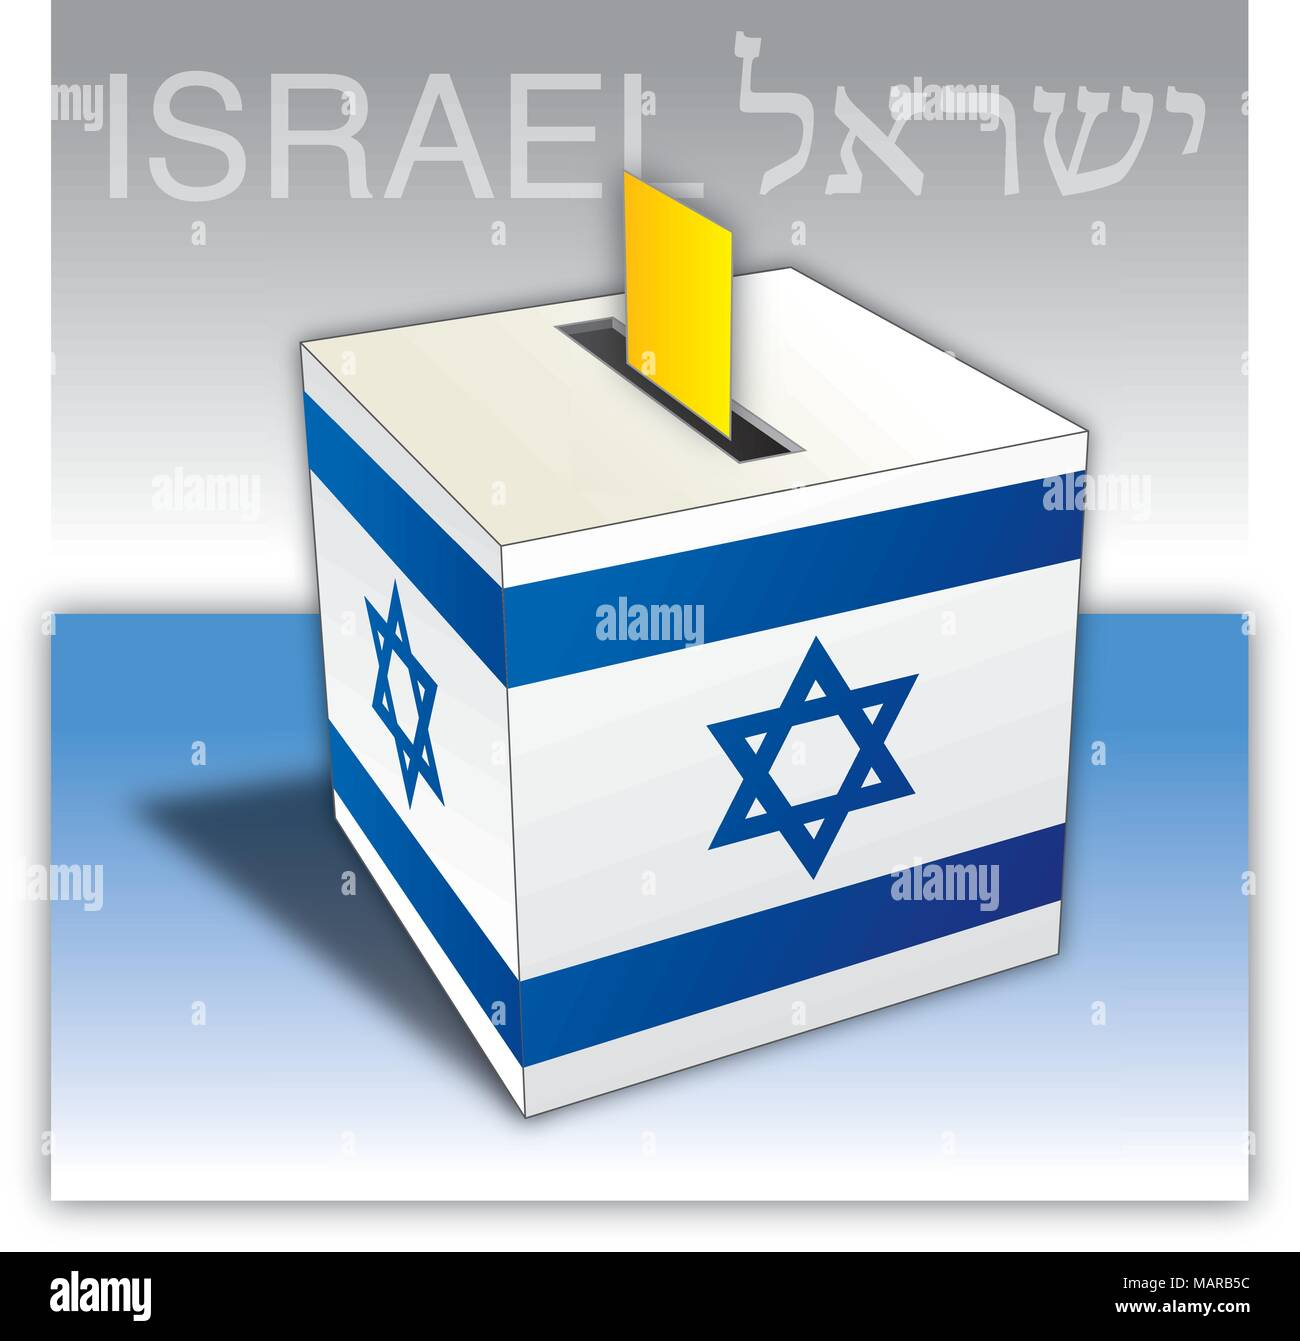 Israel Elections Voting Ballot Box With Flag And Symbols Stock